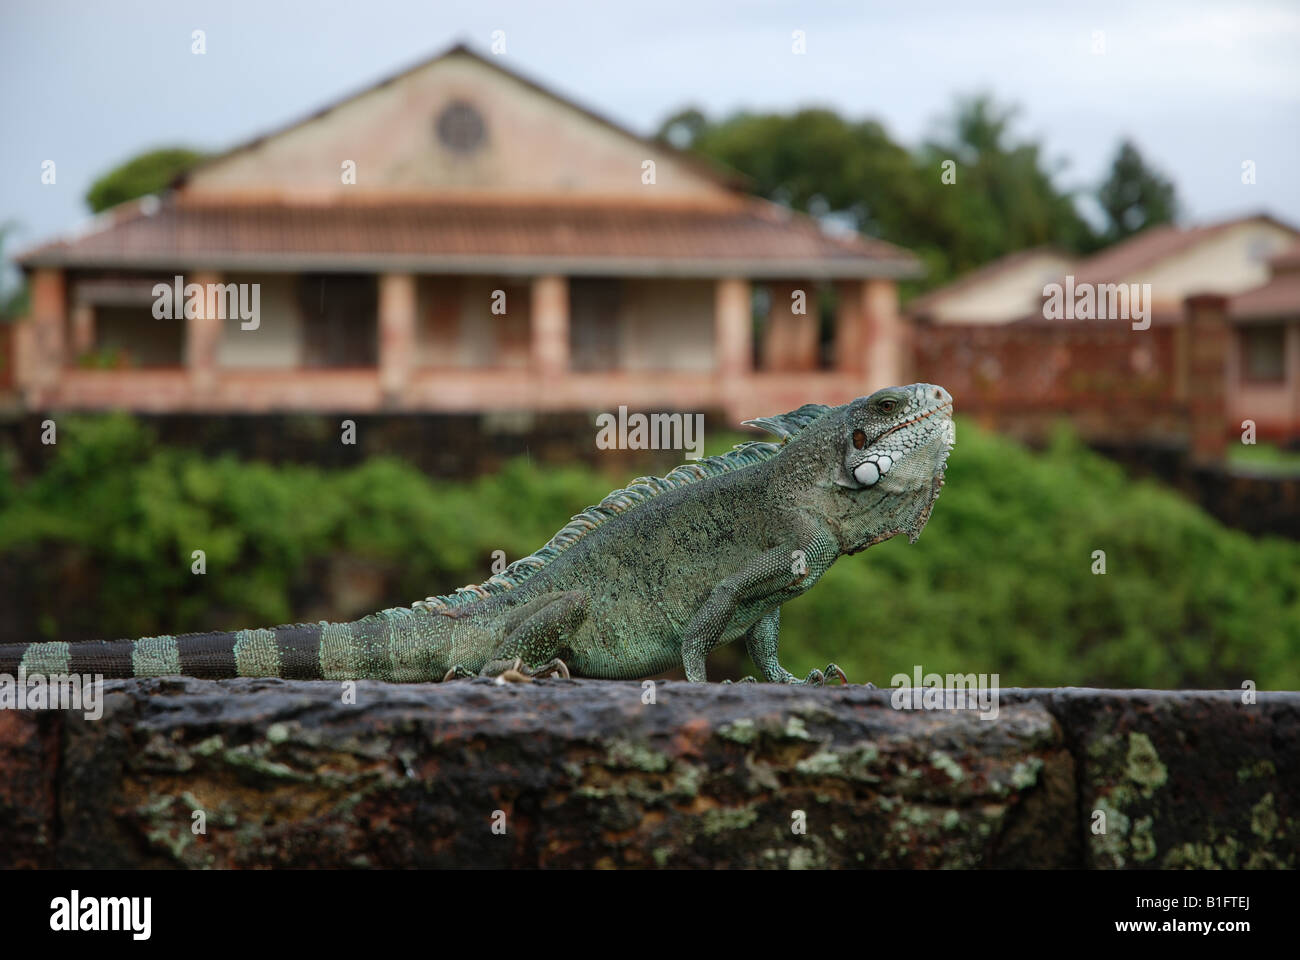 iguan on a rockwall by the sun - Stock Image